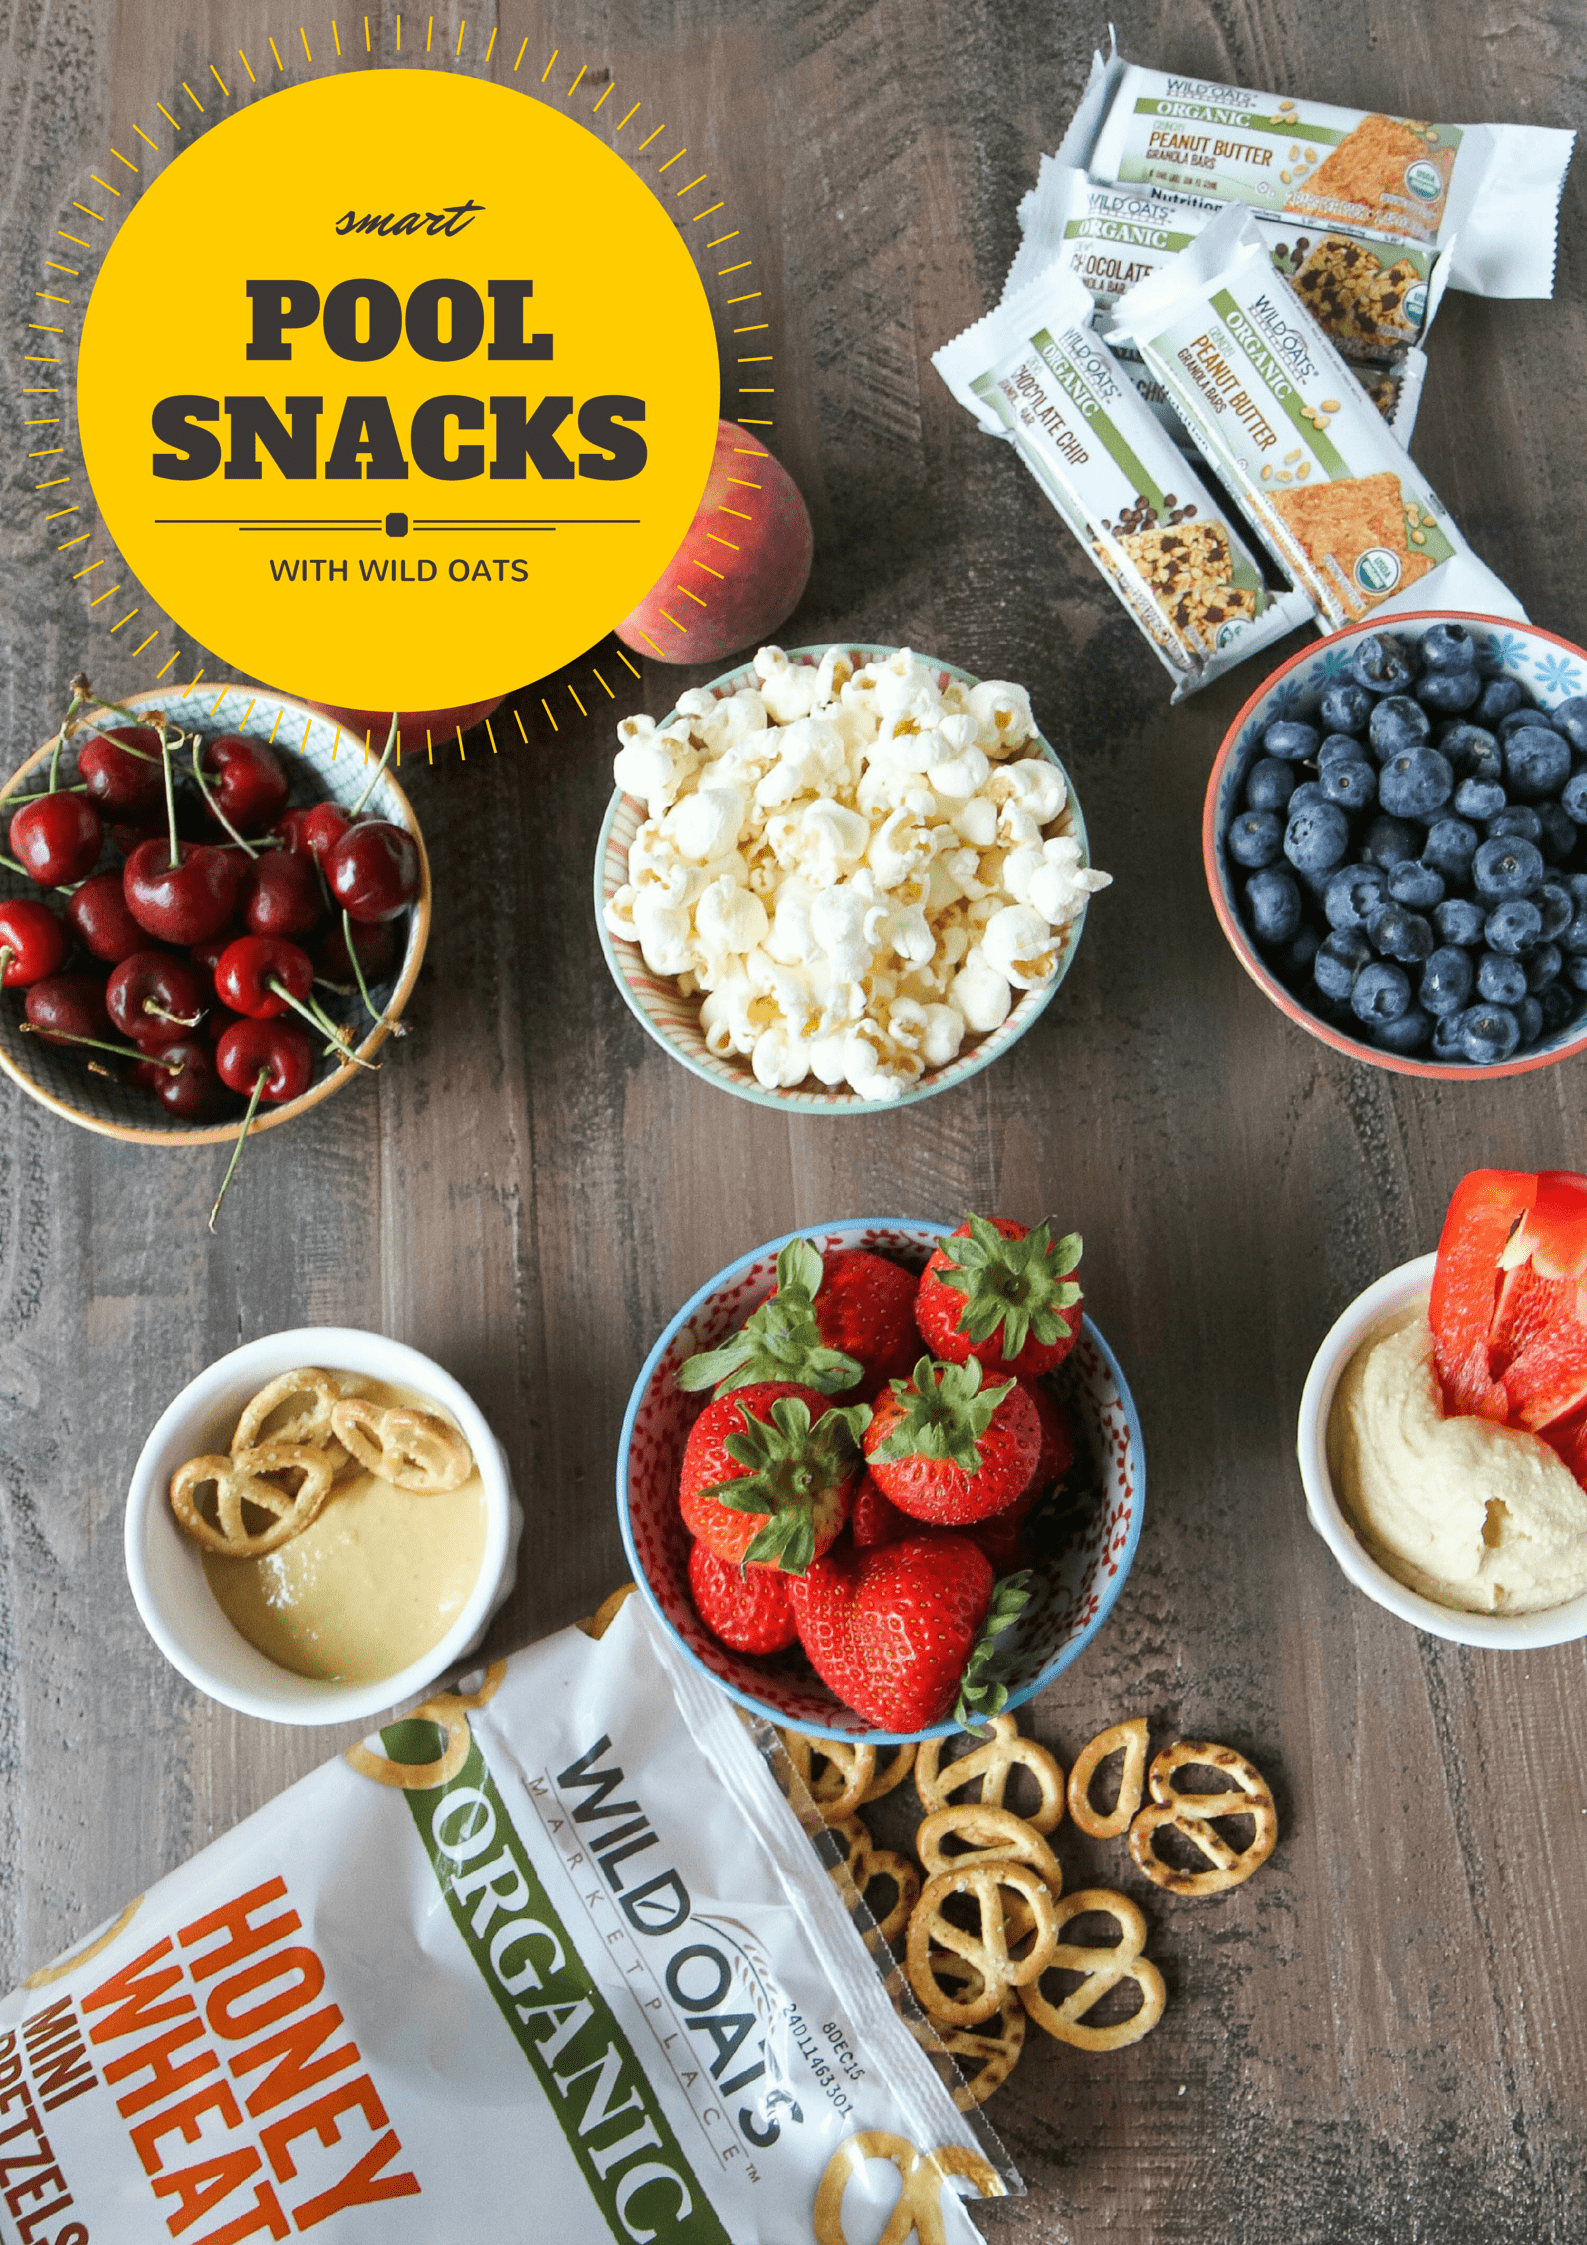 Smart Pool Snack Ideas from MomAdvice.com